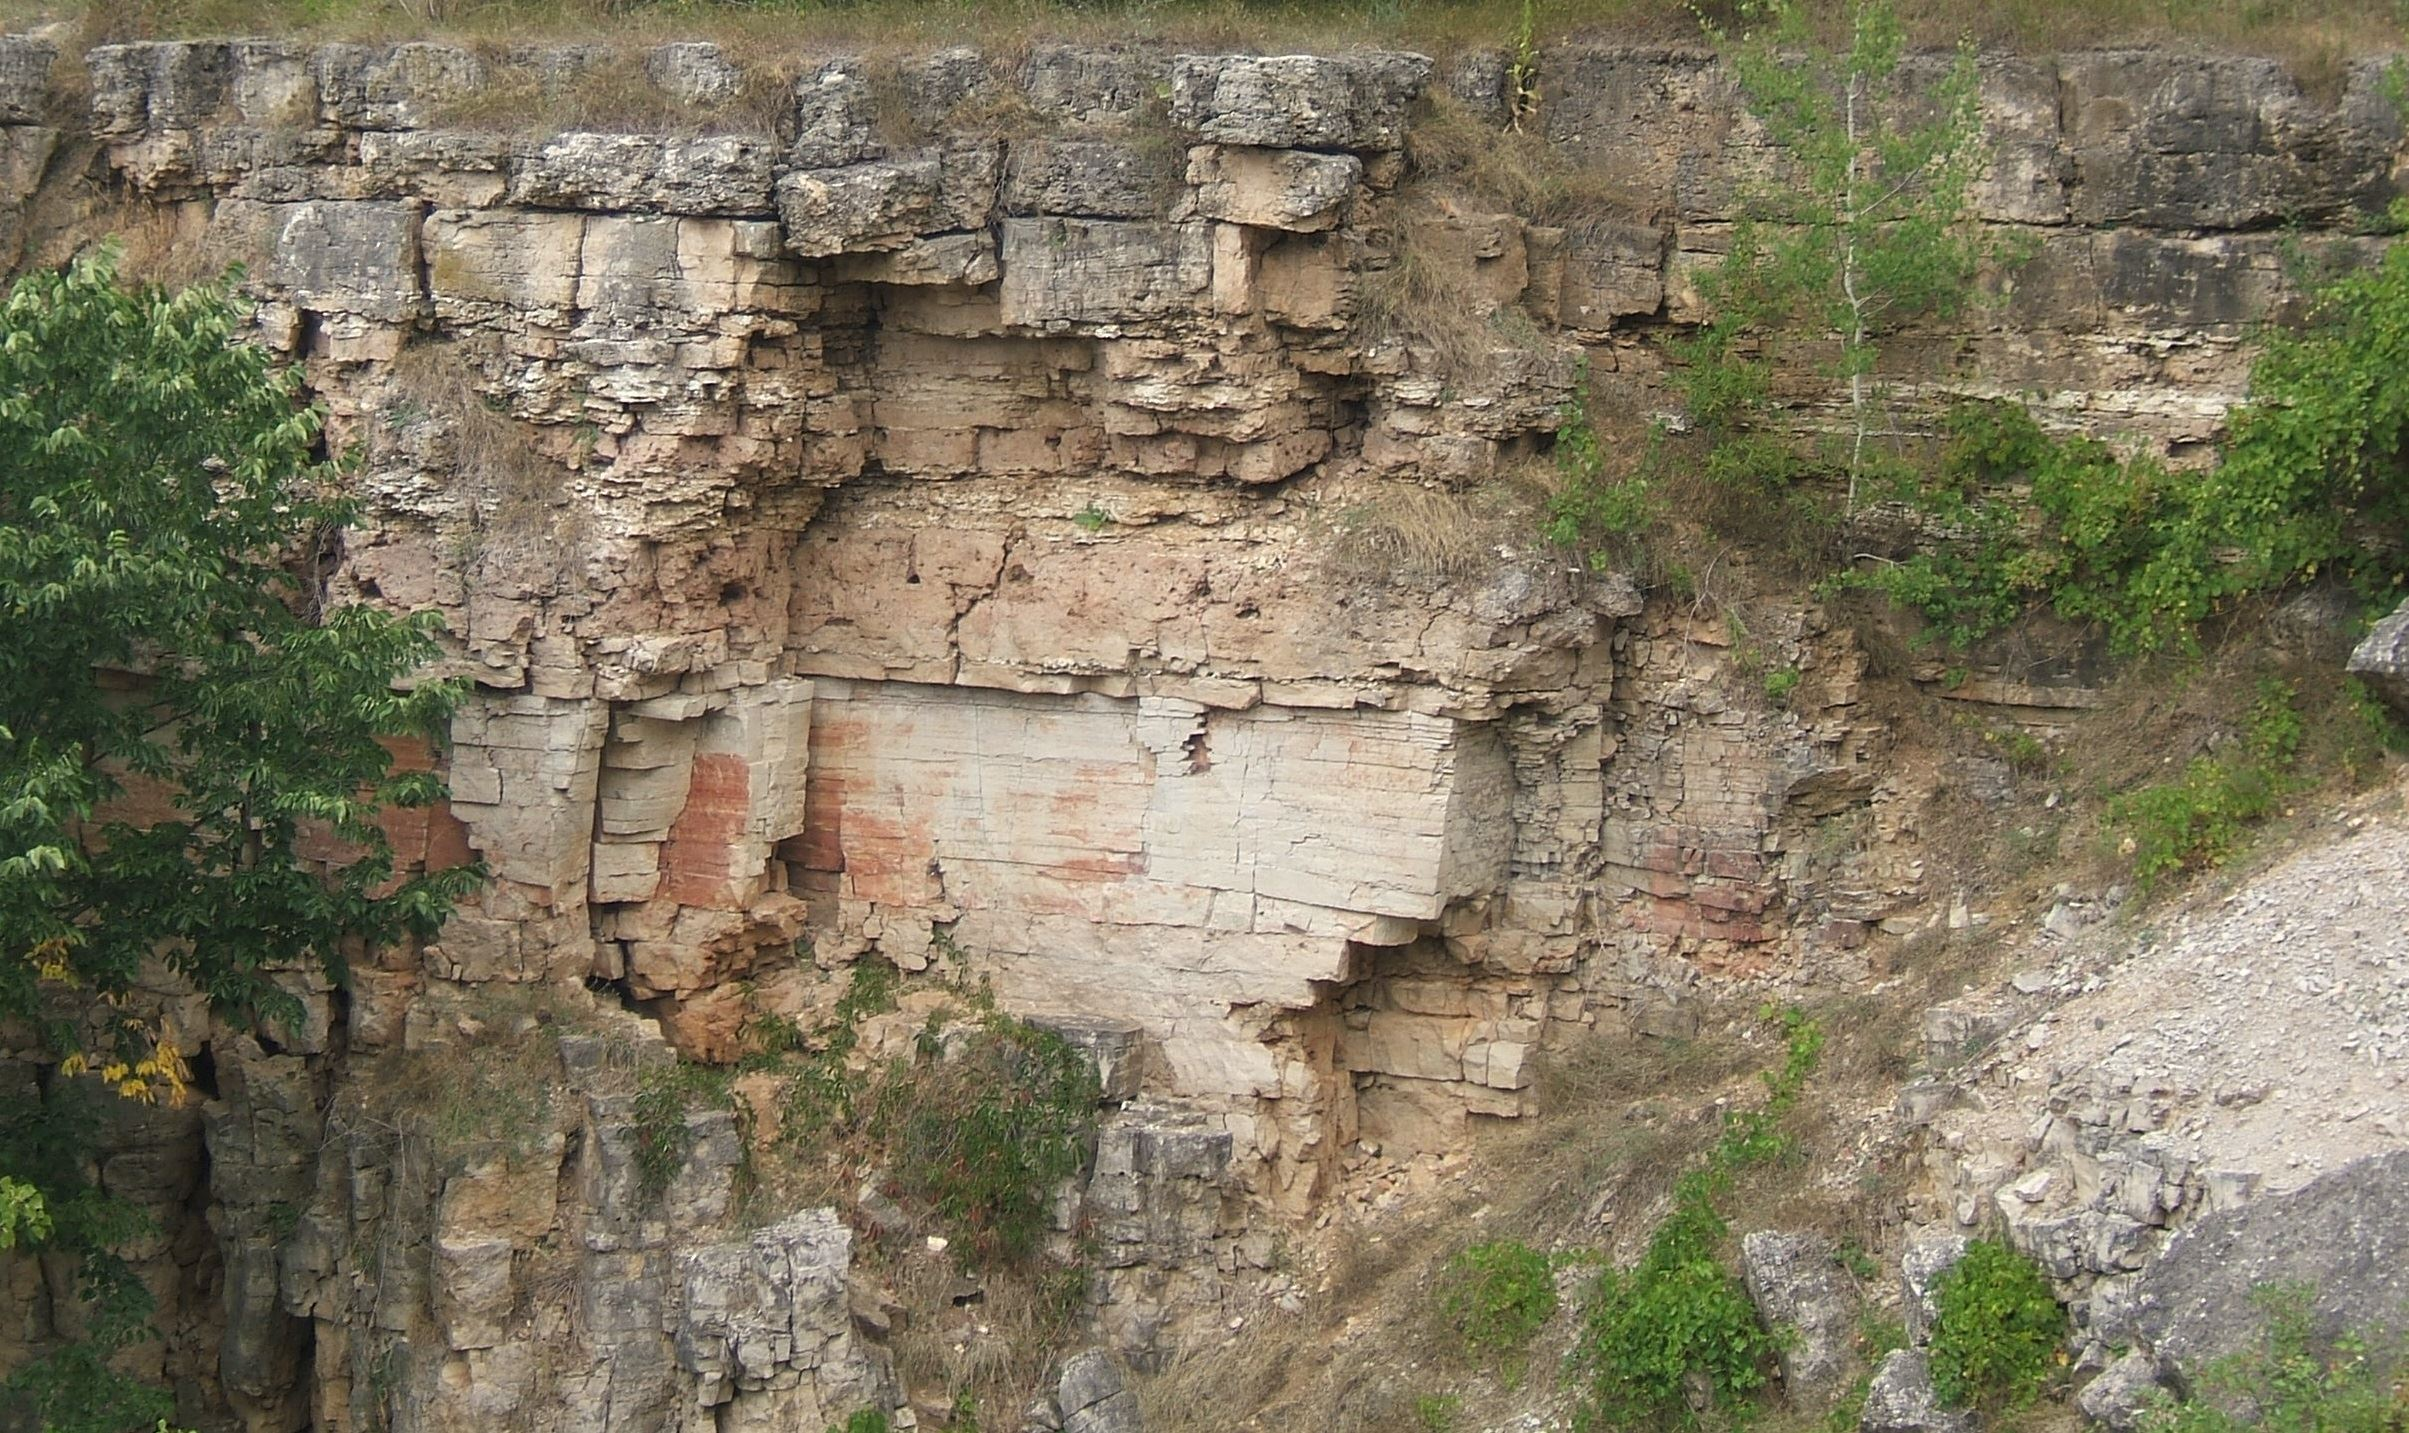 A cliff face showing cracks and eroded gravel